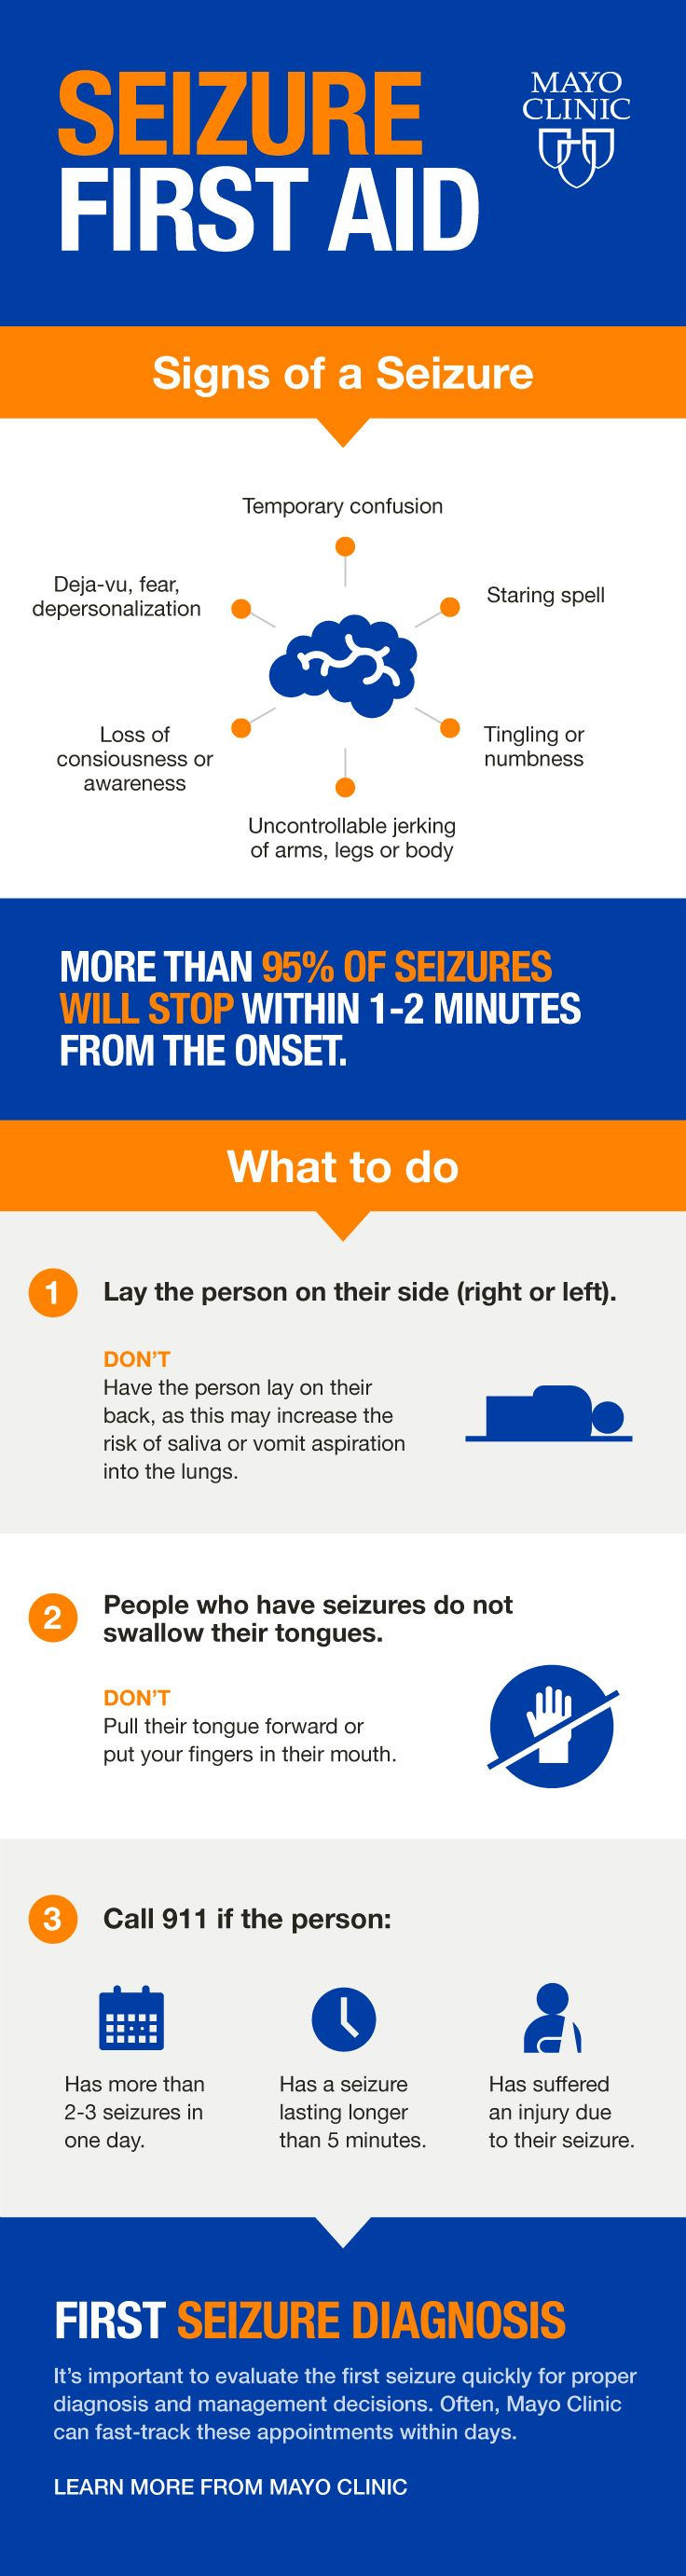 More than 95% of seizures will stop within 1-2 minutes. What do you do when someone with epilepsy has a seizure?